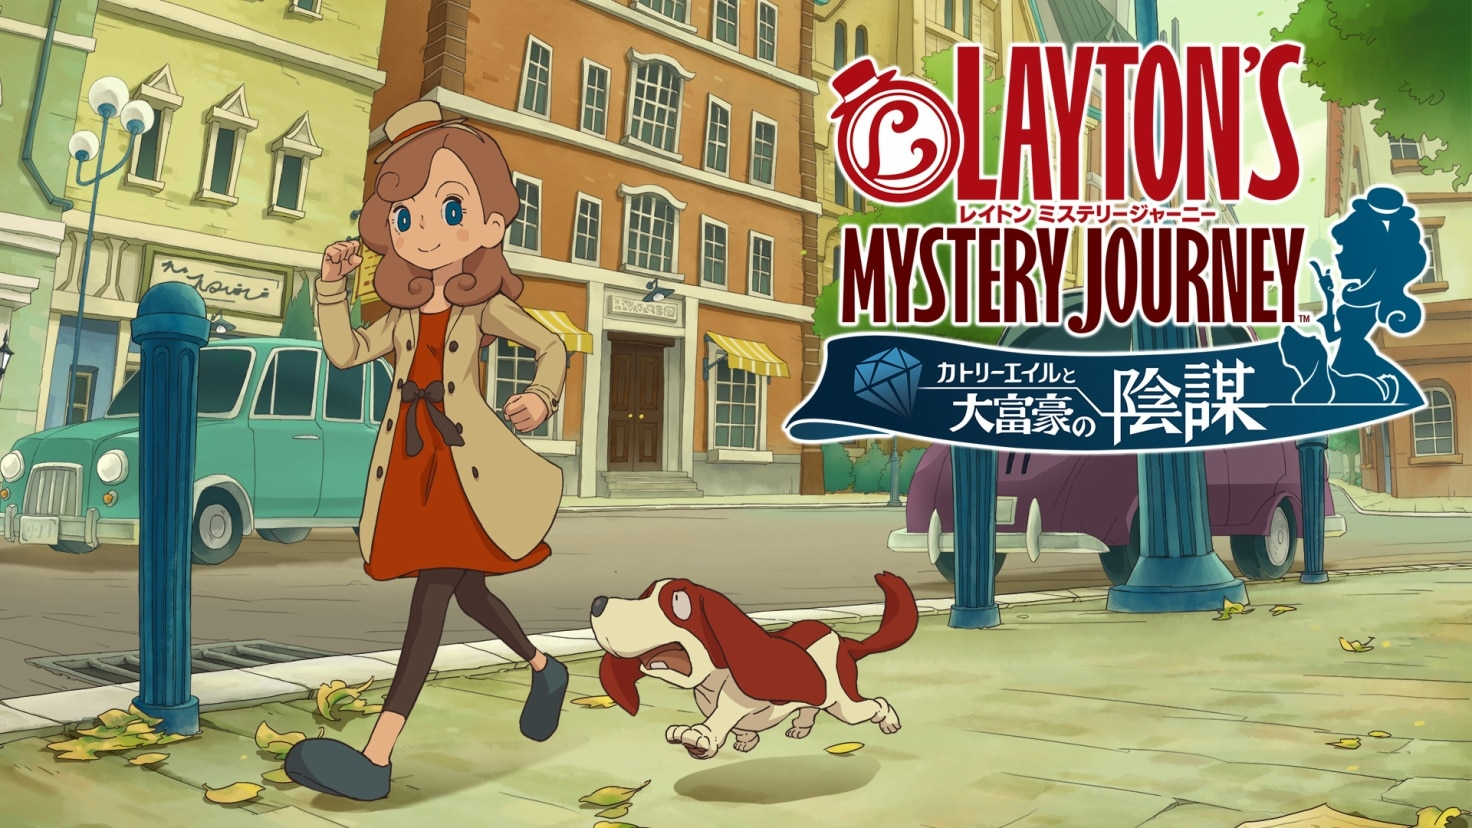 Layton's Mystery Journey DX is coming